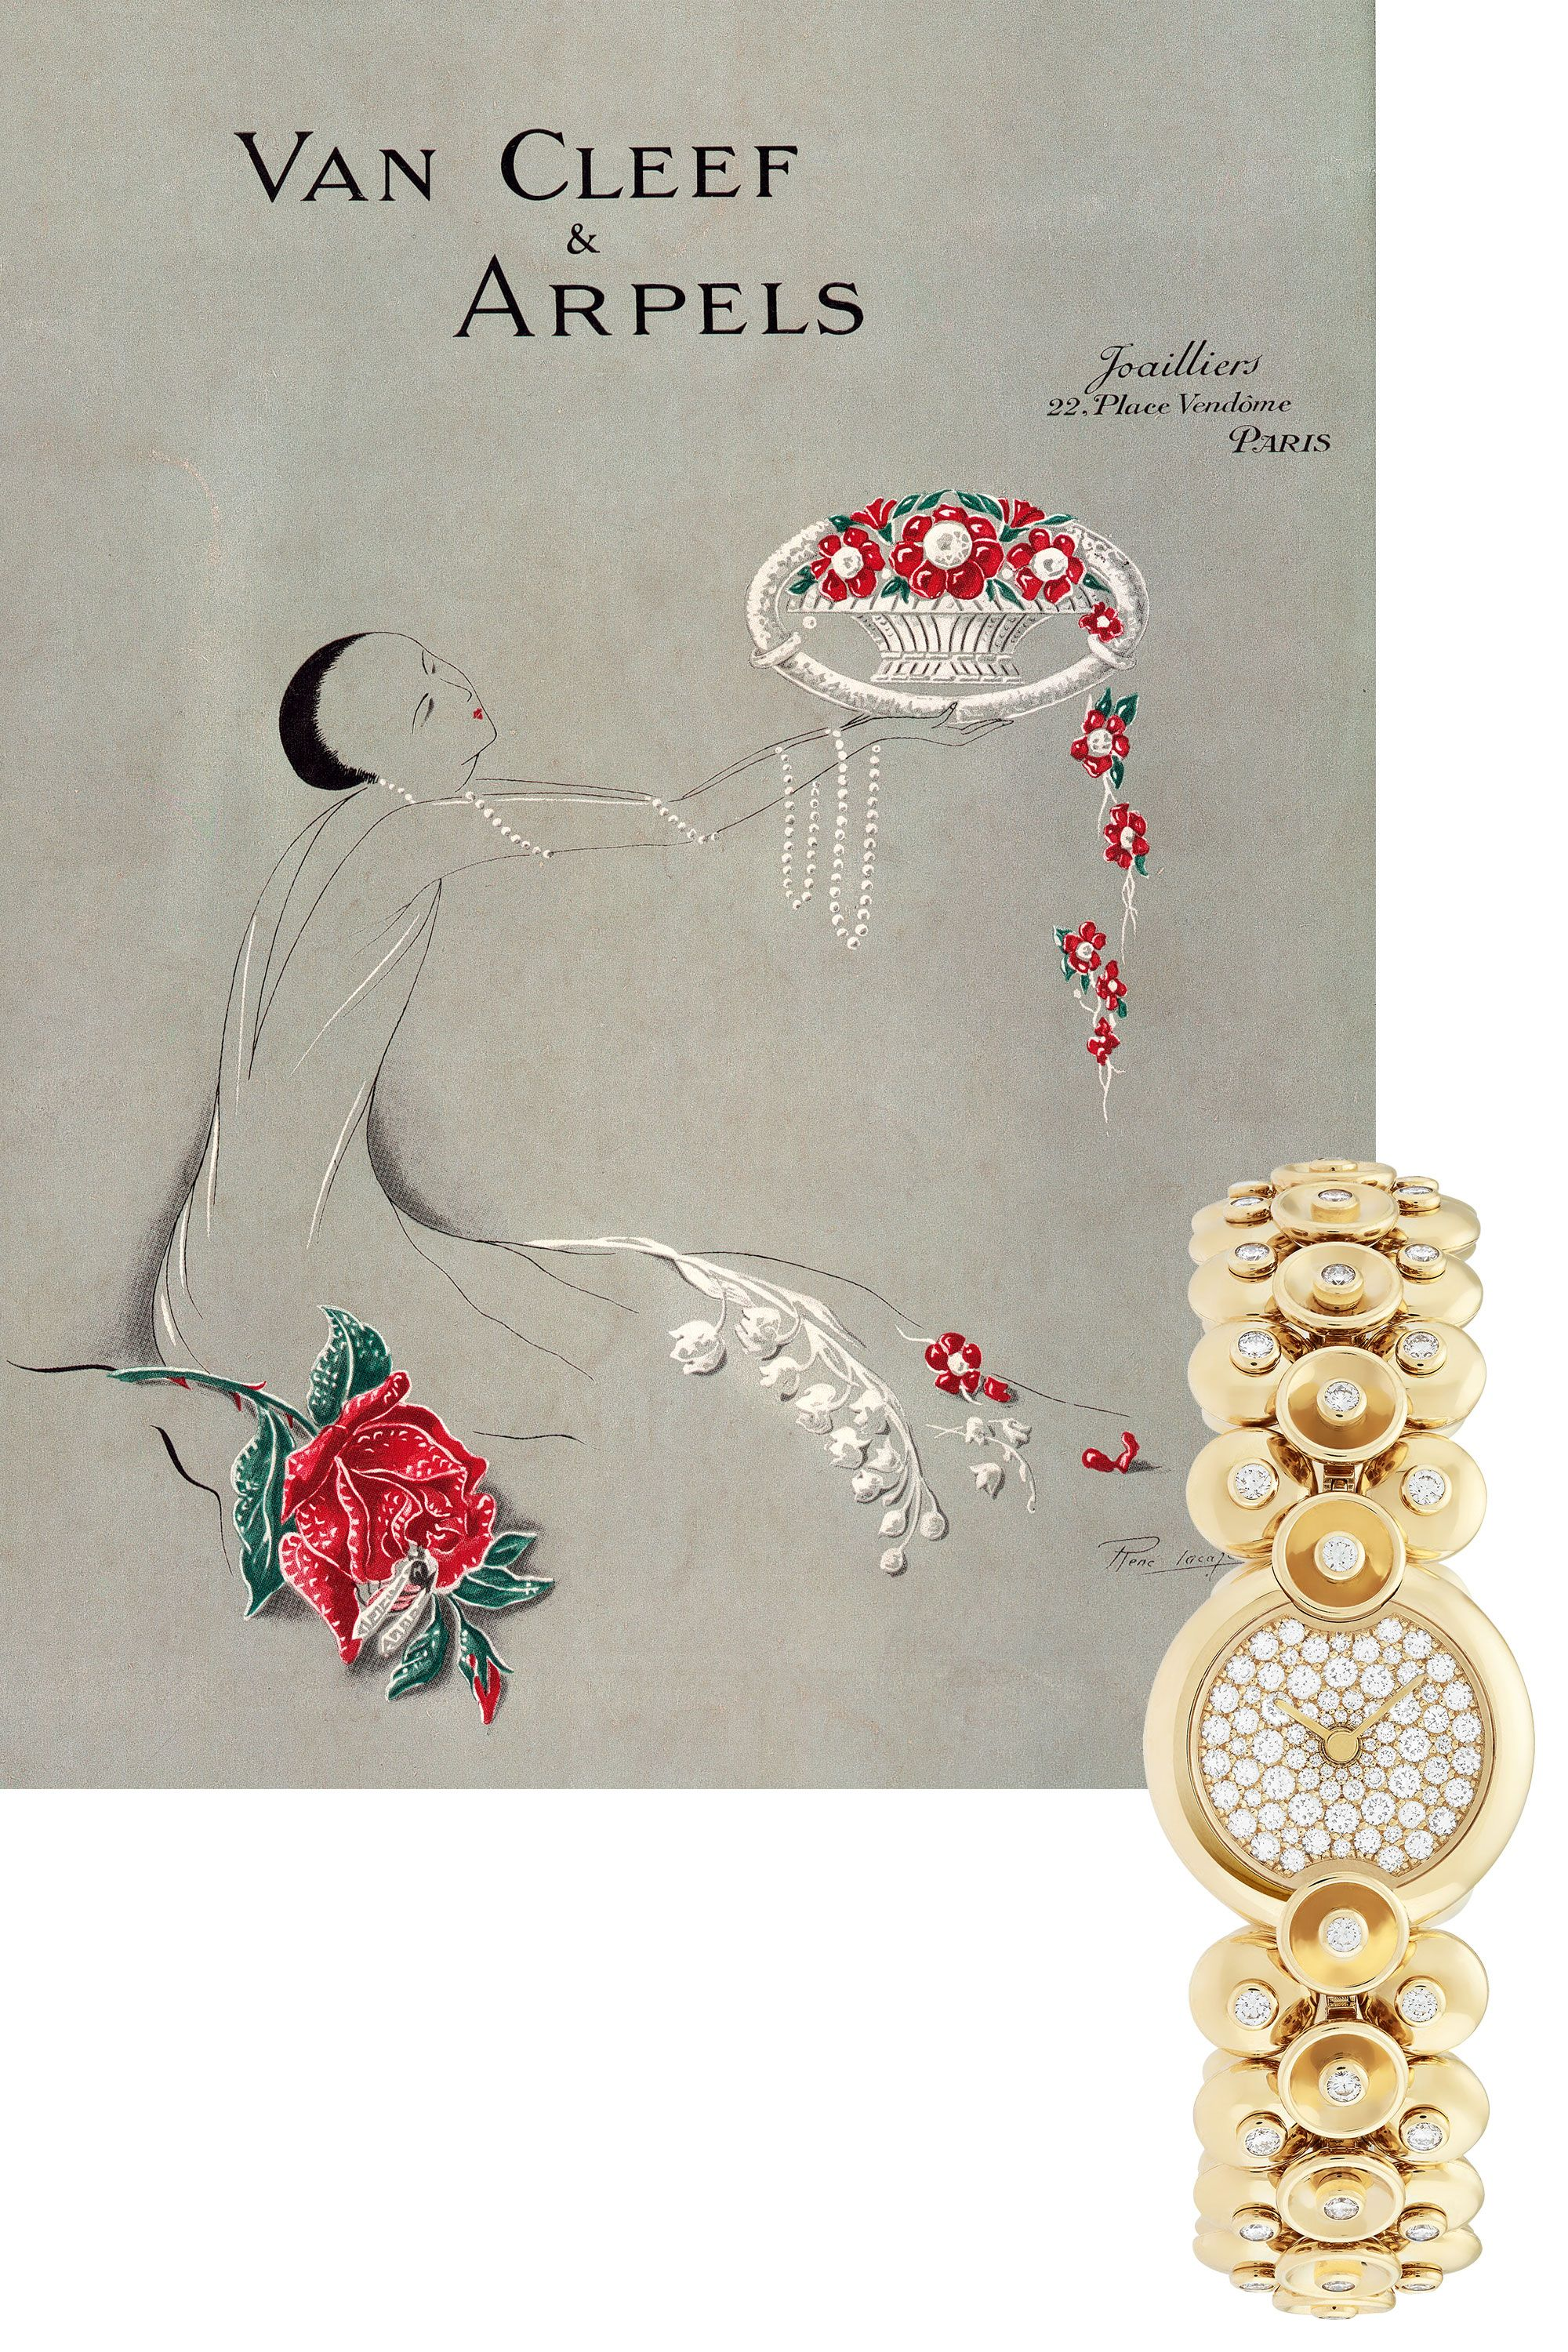 """<p>Art Deco elegance was in full force in this Van Cleef &amp&#x3B; Arpels&nbsp&#x3B;ad for&nbsp&#x3B;its&nbsp&#x3B;boutique&nbsp&#x3B;at Paris's Place Vendôme<span class=""""redactor-invisible-space"""" data-verified=""""redactor"""" data-redactor-tag=""""span"""" data-redactor-class=""""redactor-invisible-space"""">. T</span>he same level of glam is still apparent&nbsp&#x3B;today, with a yellow gold and diamond watch based on a """"paillette"""" motif created in the 1930s.&nbsp&#x3B;</p><p><em data-redactor-tag=""""em"""" data-verified=""""redactor"""">Bouton d'or, $64,500&#x3B;&nbsp&#x3B;</em><a href=""""http://www.vancleefarpels.com/us/en.html"""" target=""""_blank"""" data-tracking-id=""""recirc-text-link""""><em data-redactor-tag=""""em"""" data-verified=""""redactor"""">vancleefarpels.com</em></a></p>"""